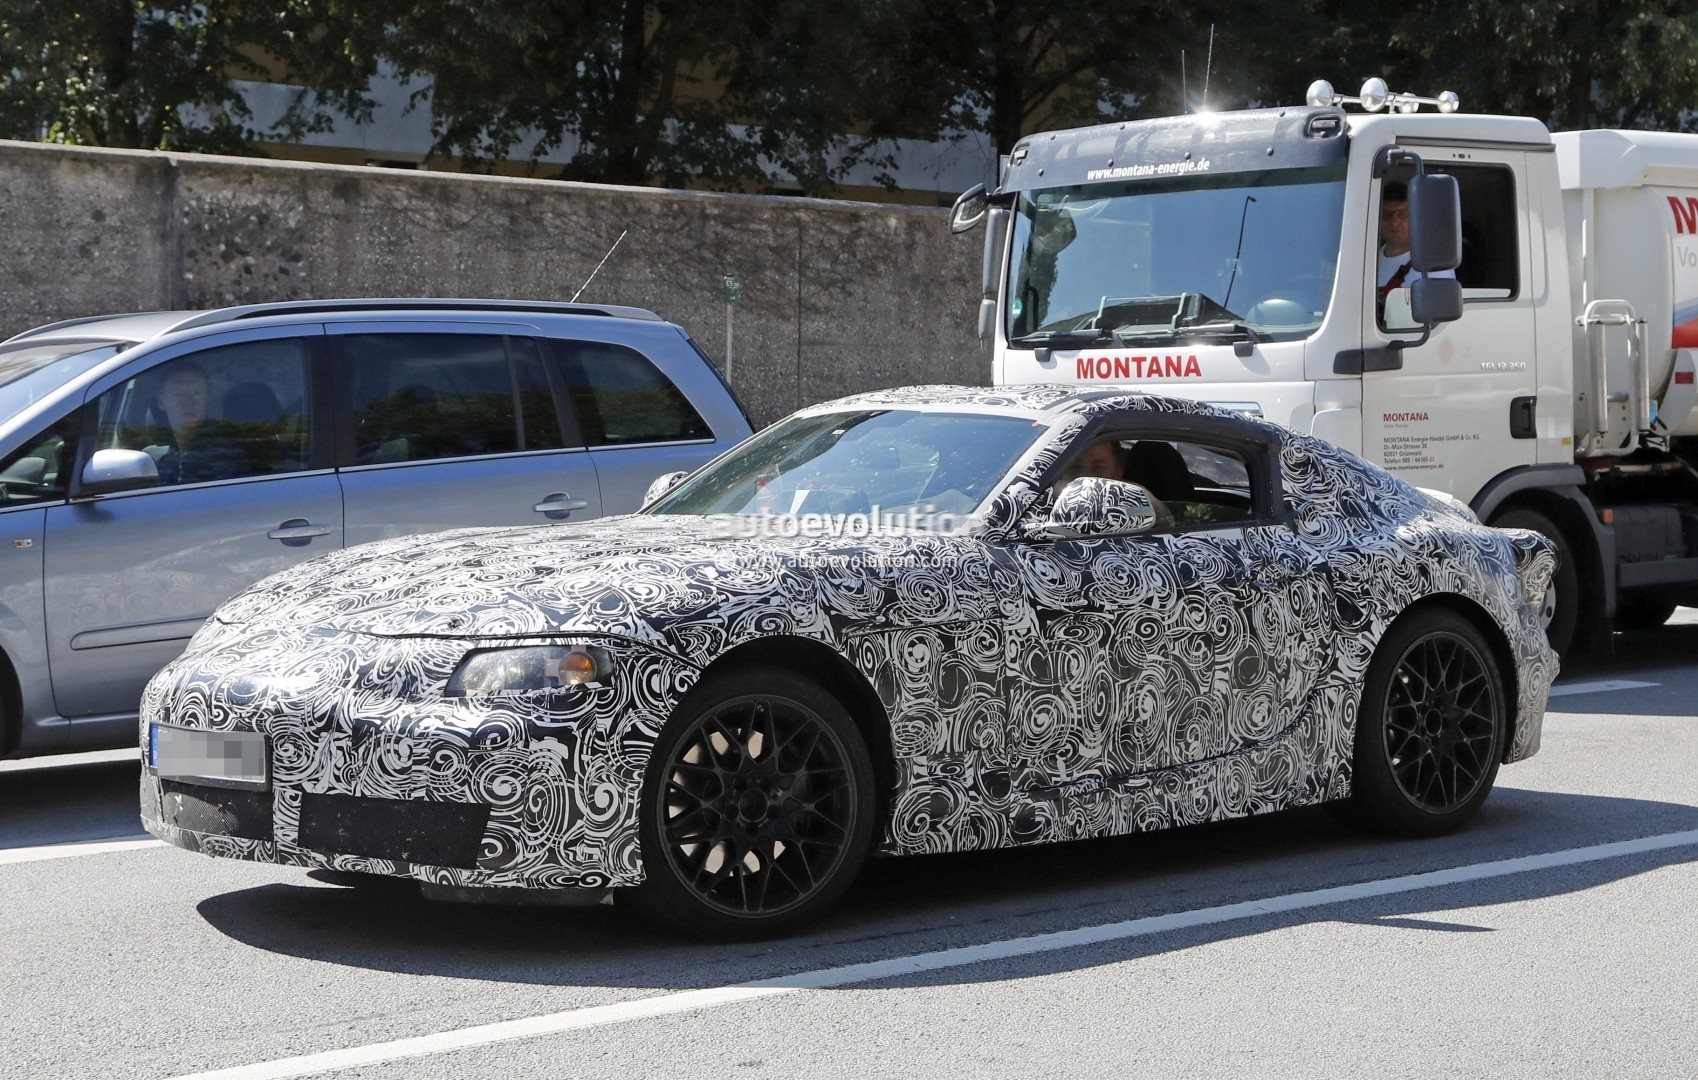 New 2018 Toyota Supra Makes Spyshot Debut Coupe Prototype